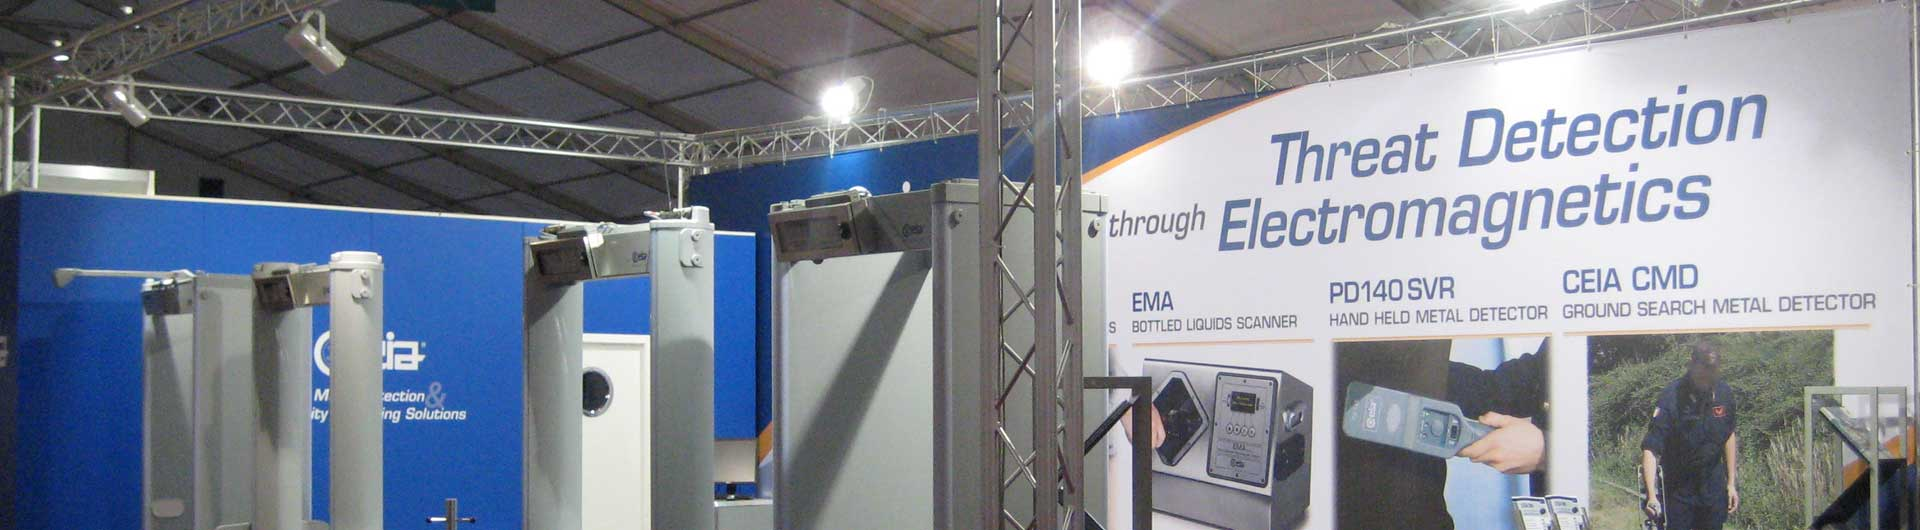 CEIA Exhibition Stand  Image